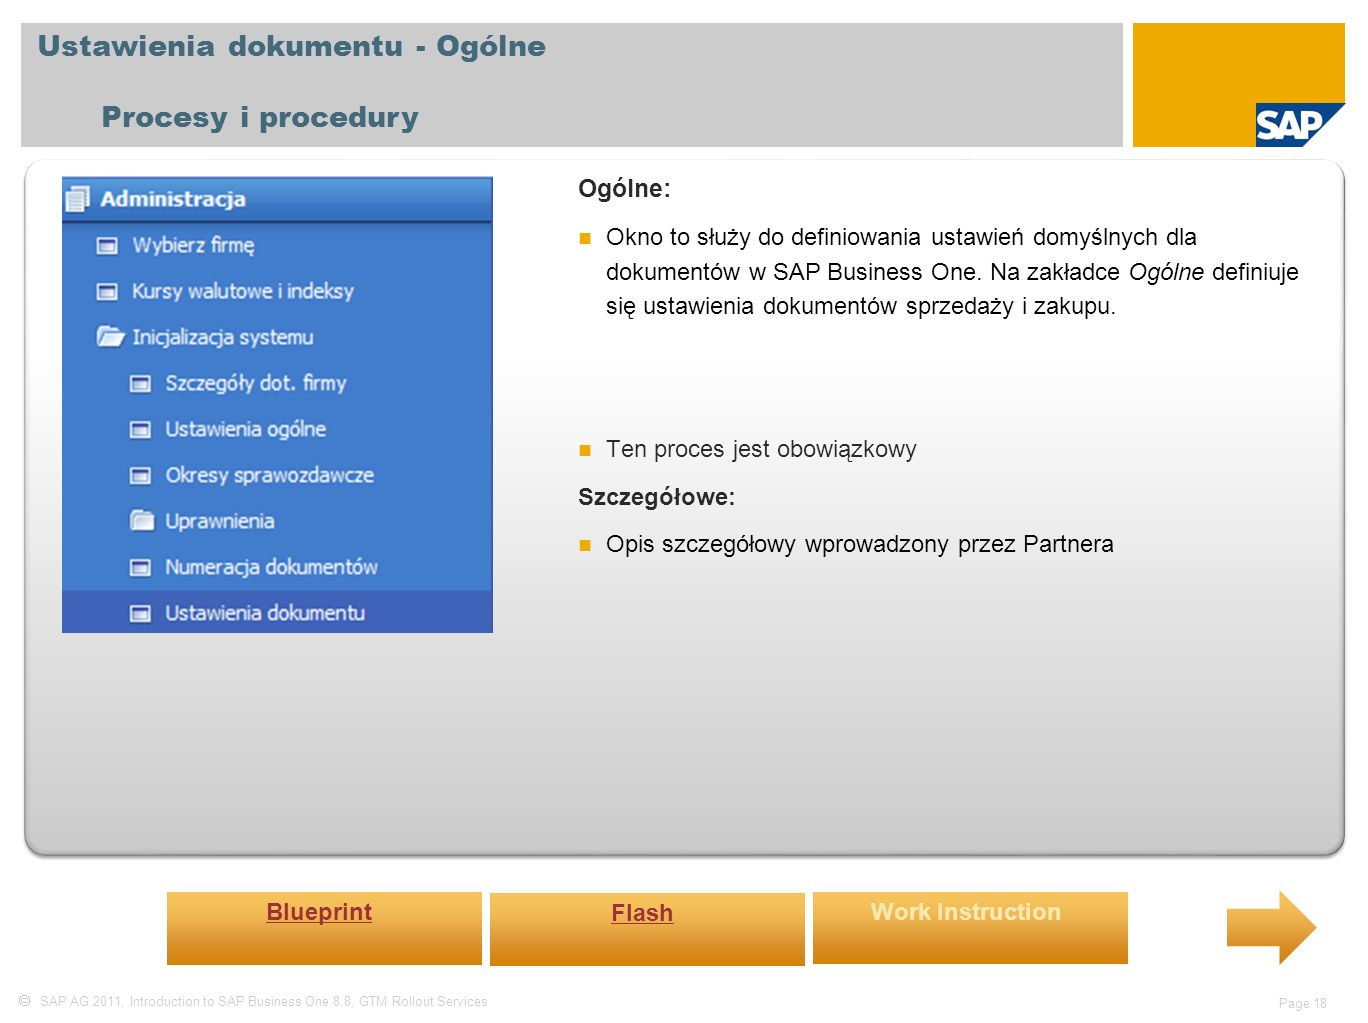  SAP AG 2011, Introduction to SAP Business One 8.8, GTM Rollout Services Page 18 Ustawienia dokumentu - Ogólne Procesy i procedury Ogólne: Okno to sł